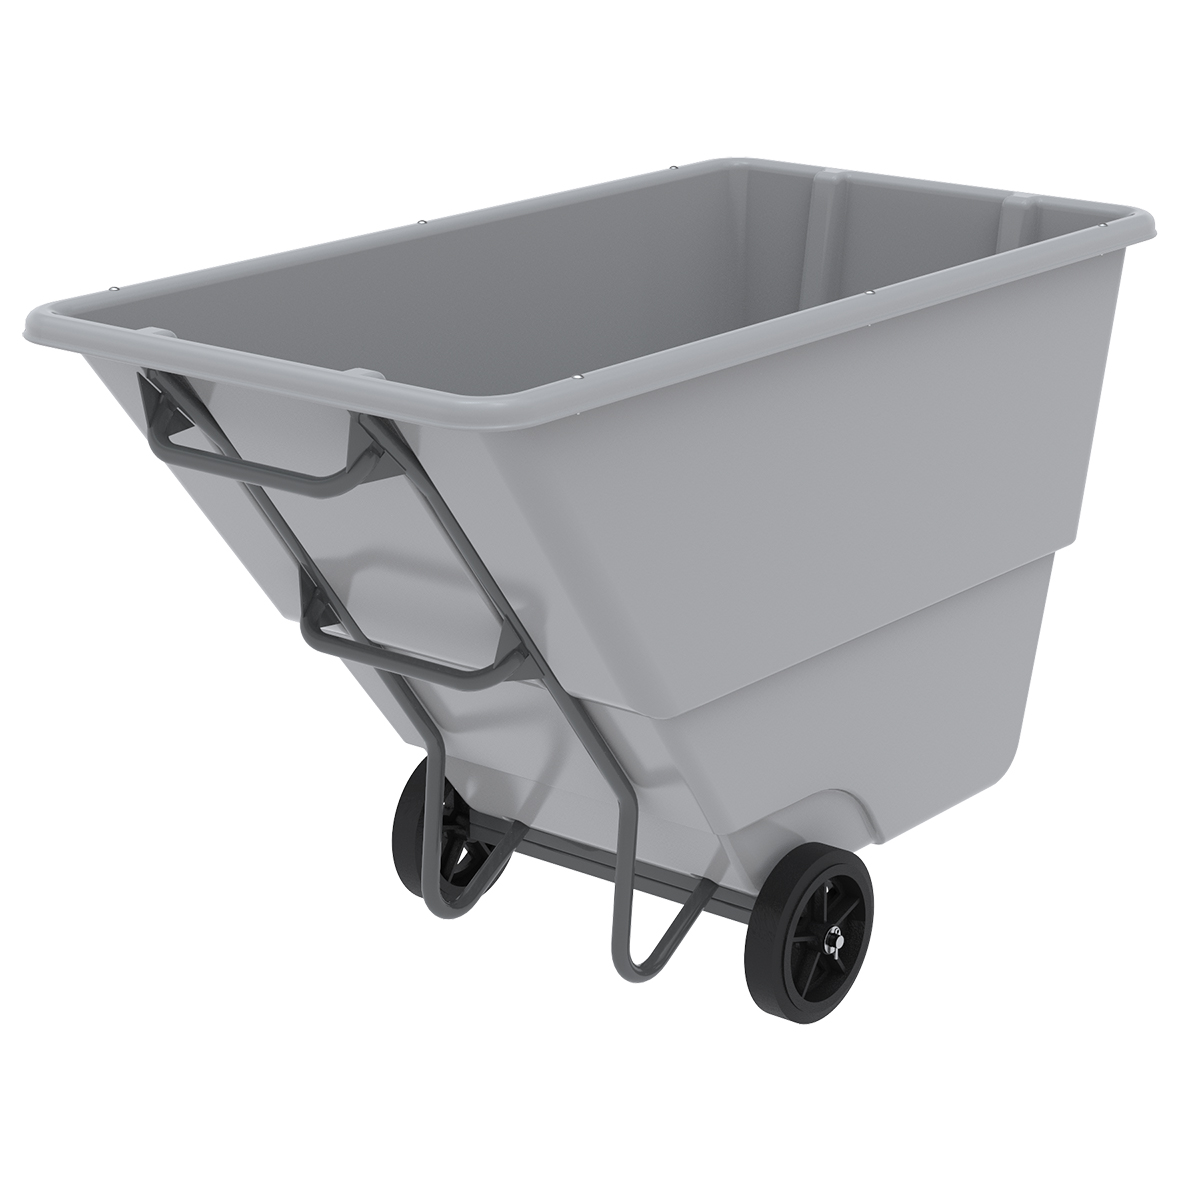 AKRO-TILT TRUCK, HEAVY DUTY, 200GAL - 1 YD.  This item sold in carton quantities of 1.